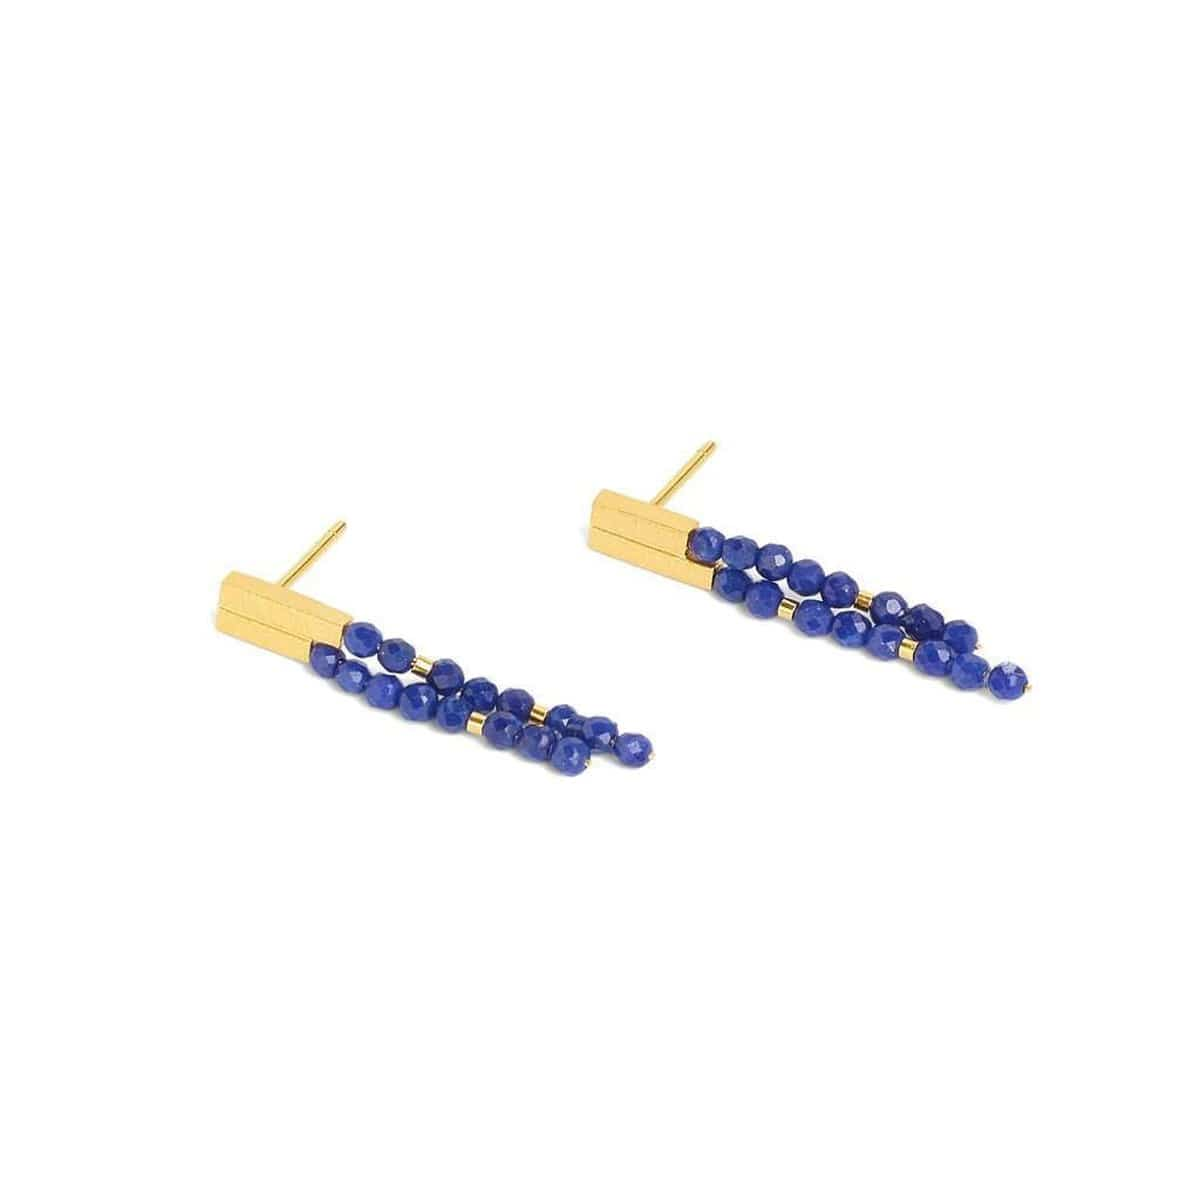 Yanizzi Lapis Lazuli Earrings - 15787236-Bernd Wolf-Renee Taylor Gallery